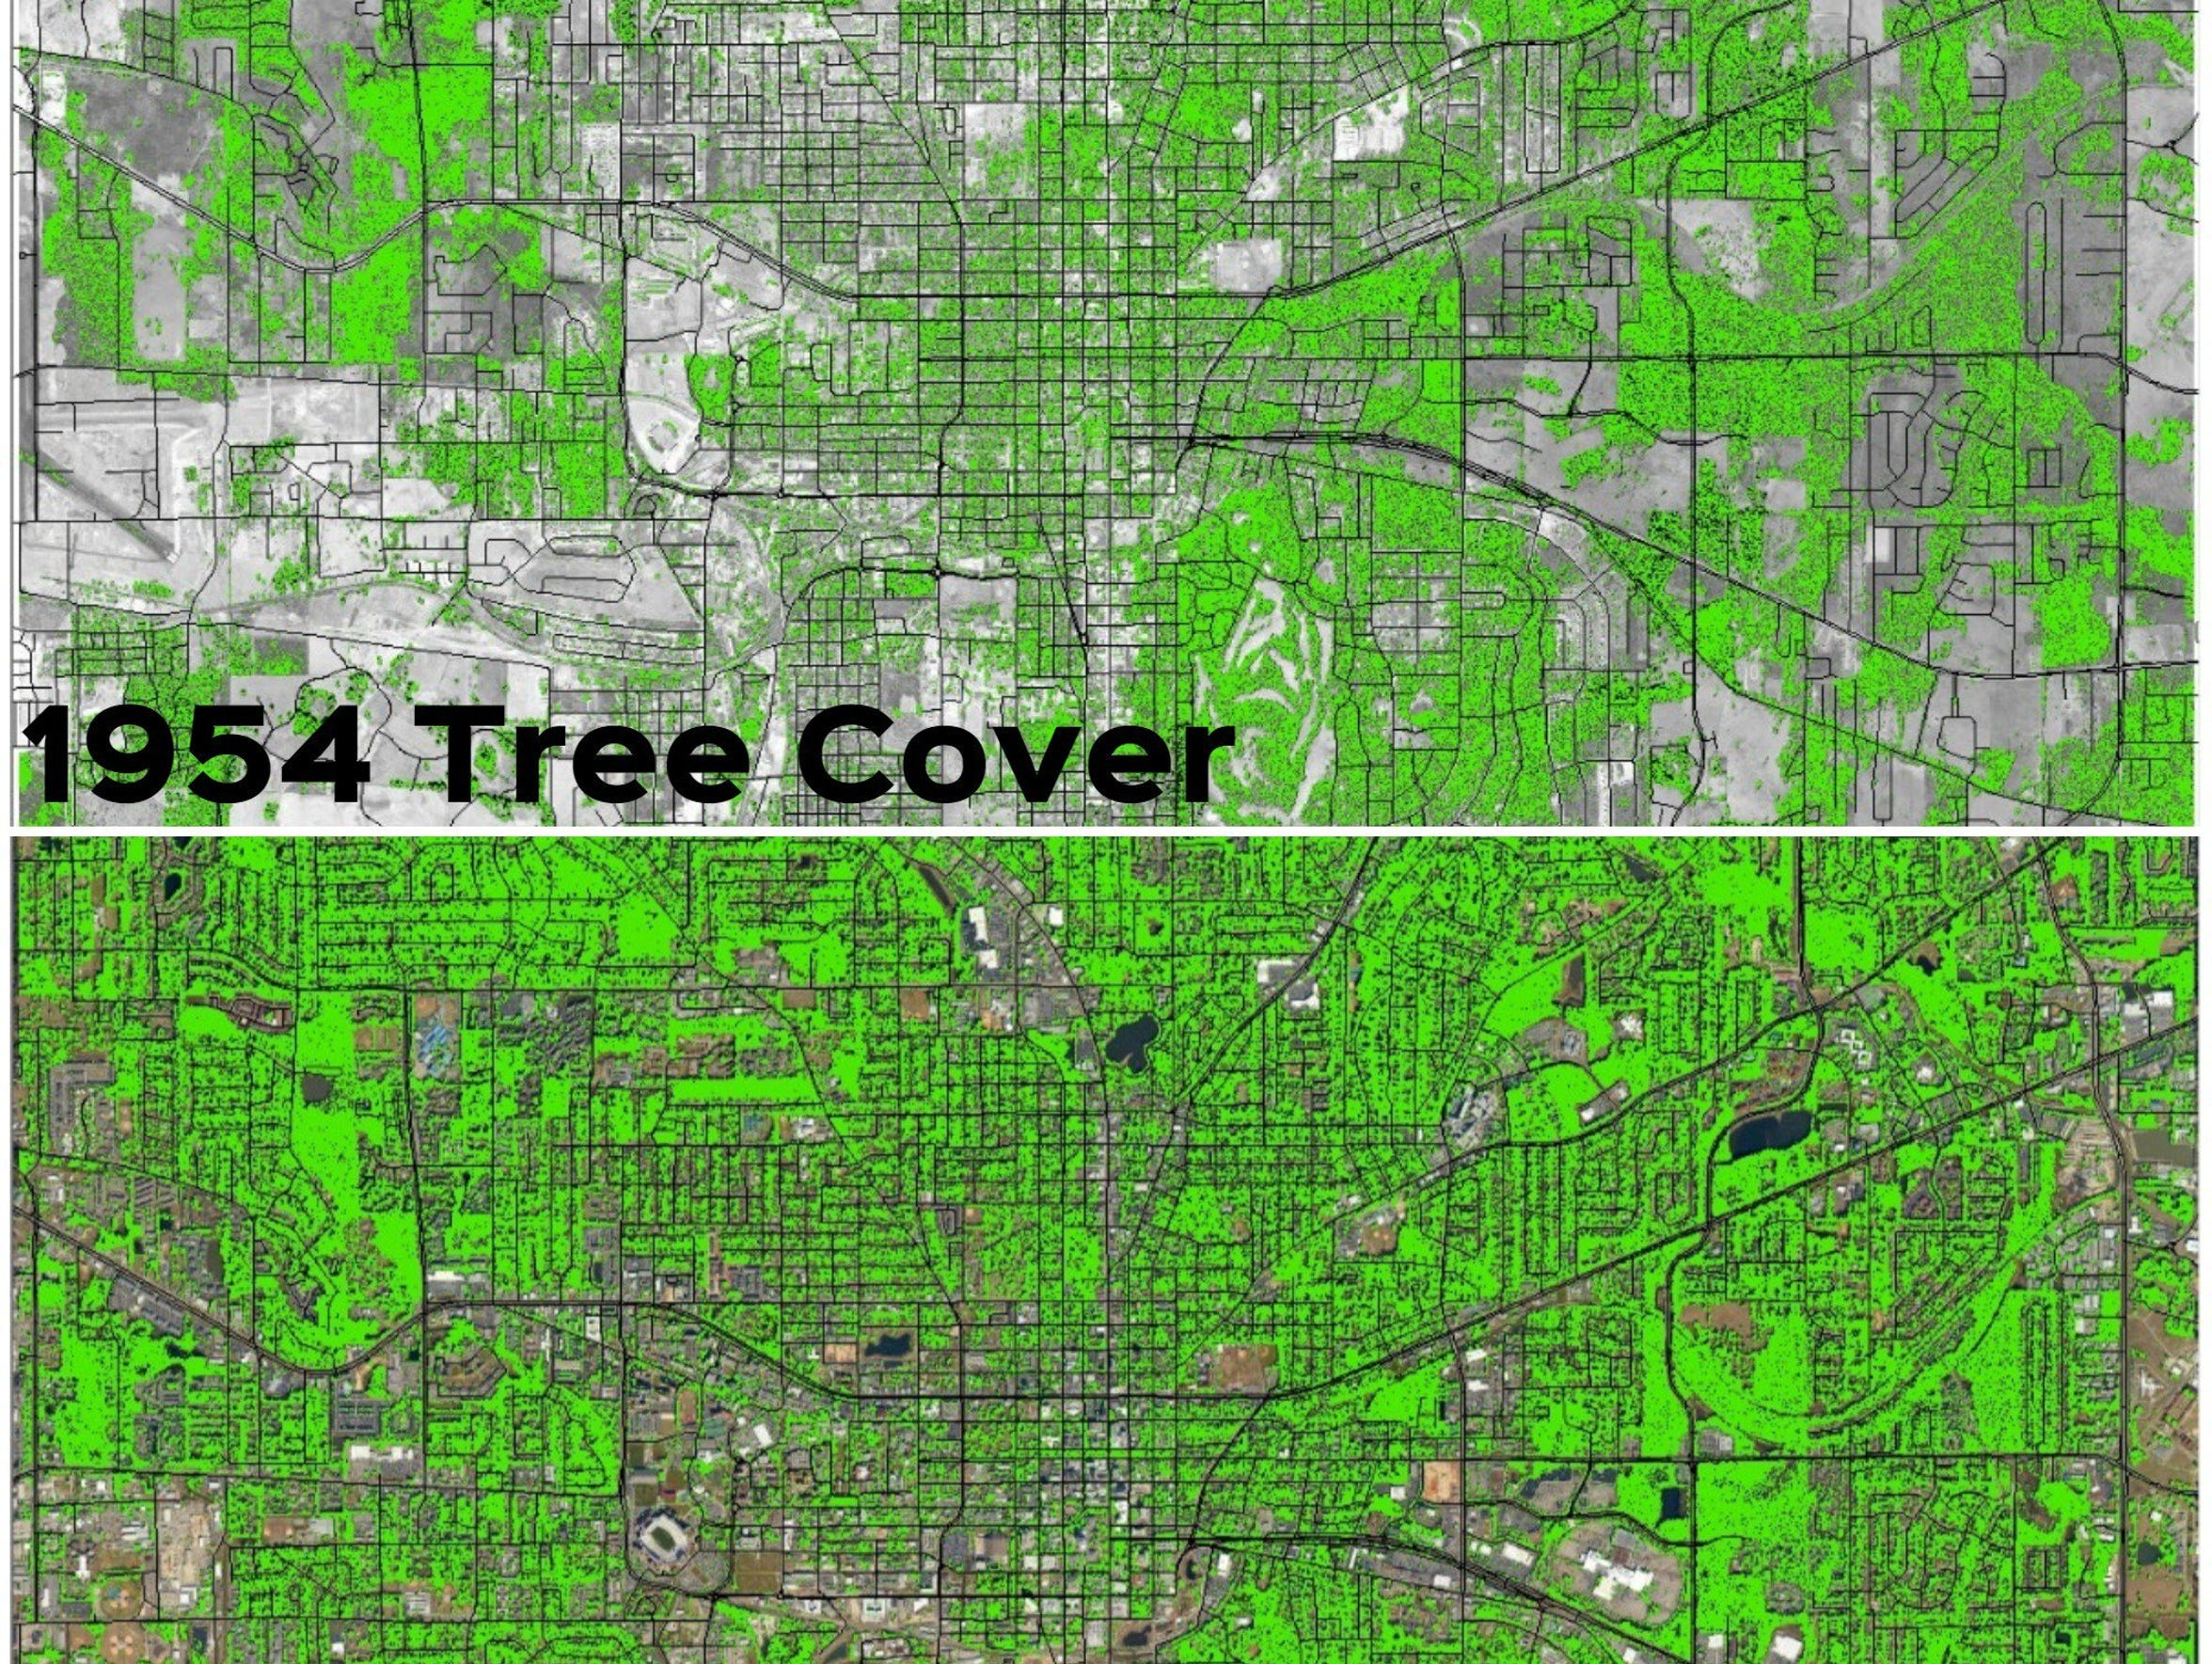 The City of Tallahassee says tree coverage has grown